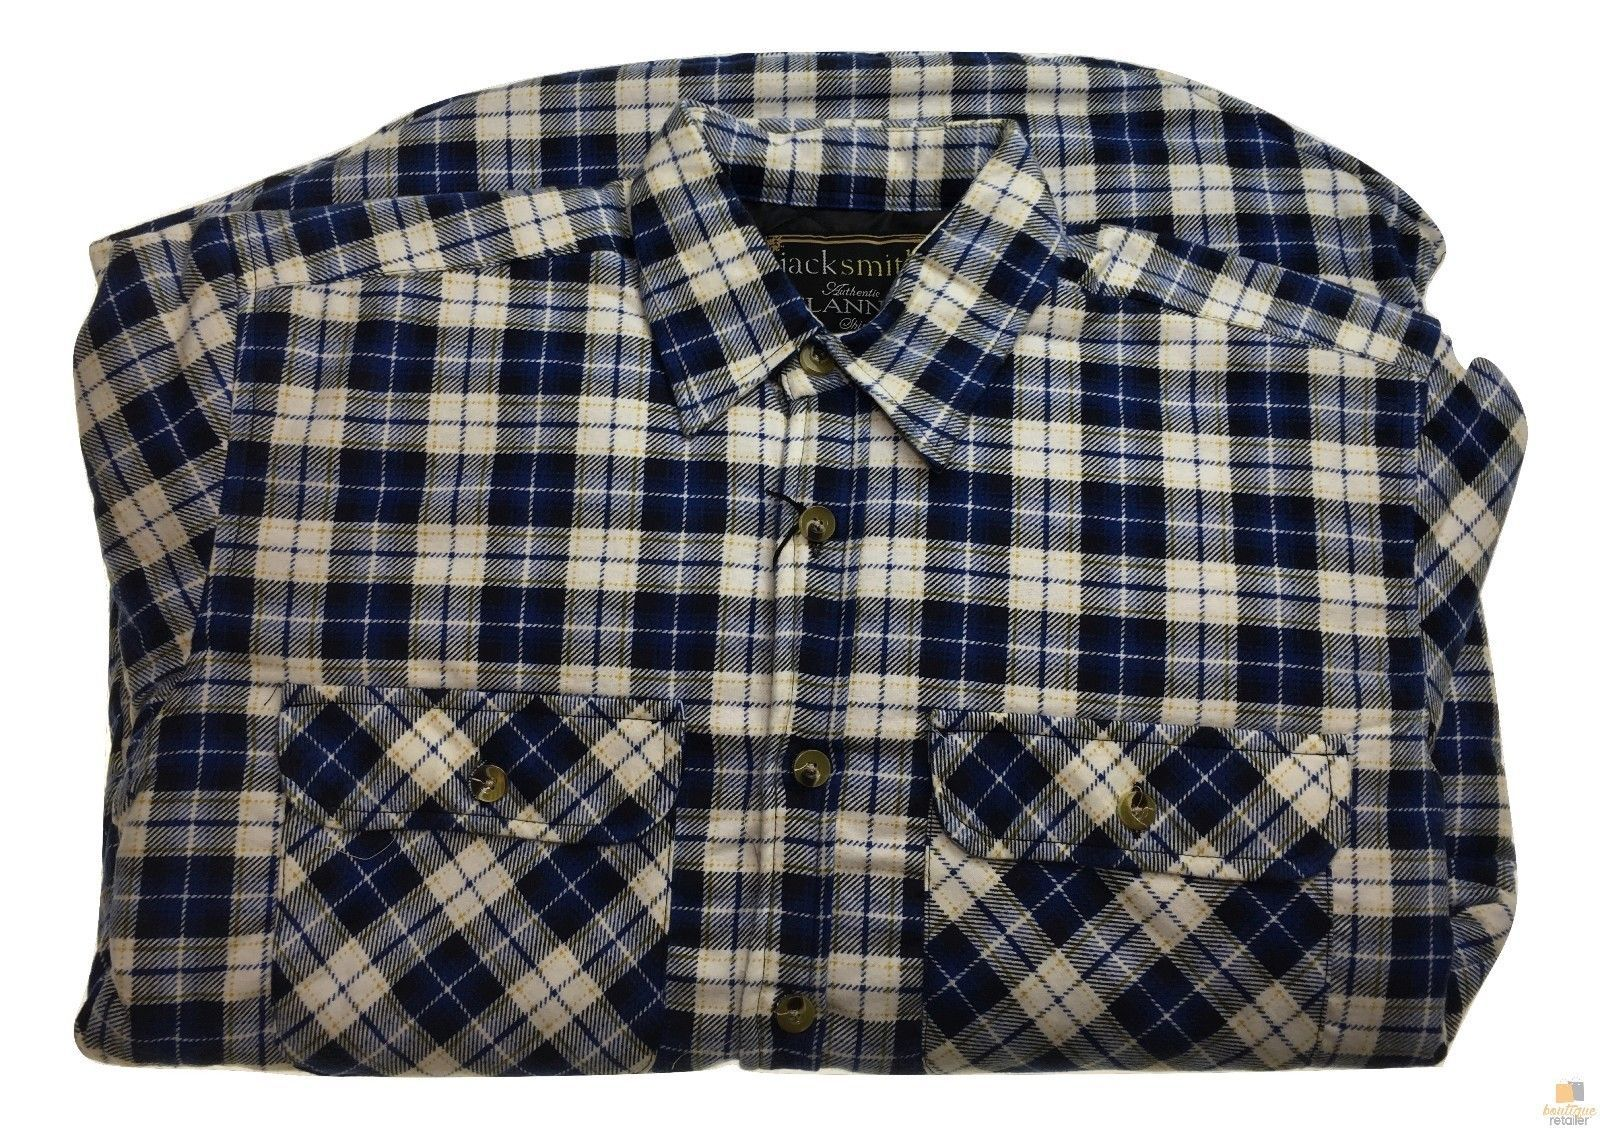 Men-039-s-QUILTED-FLANNELETTE-SHIRT-100-COTTON-Flannel-Jacket-Padded-Long-Sleeve thumbnail 66